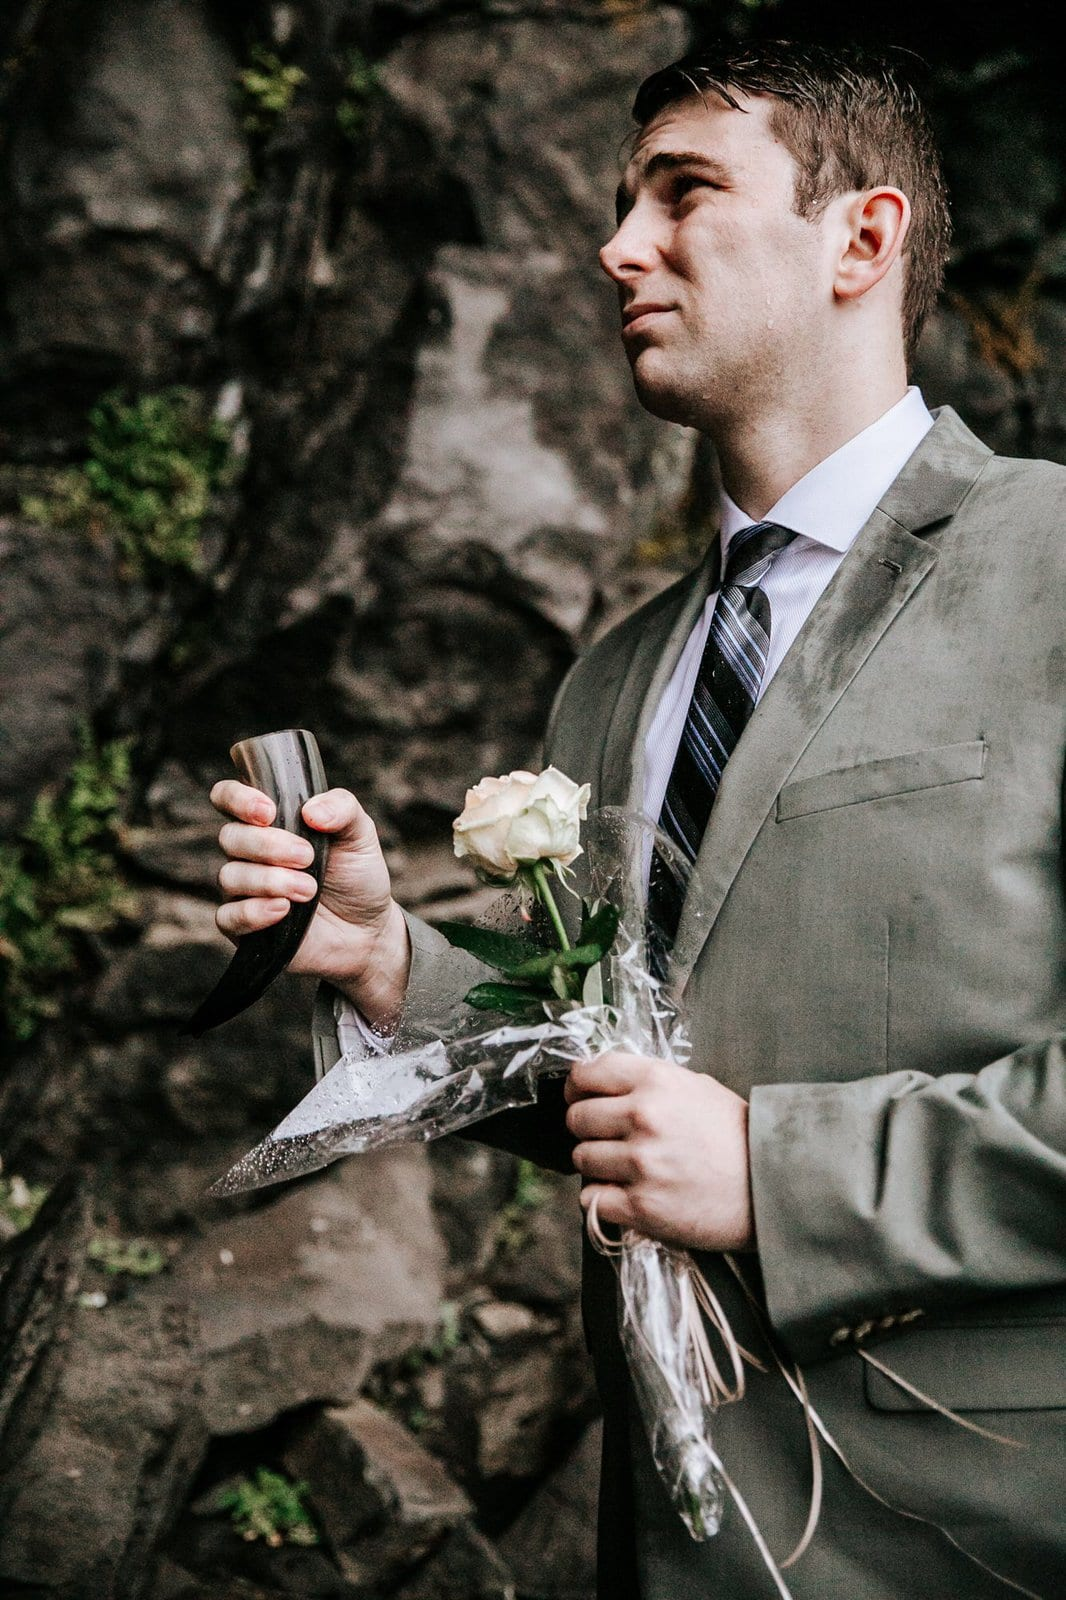 Groom toasting during ceremony.